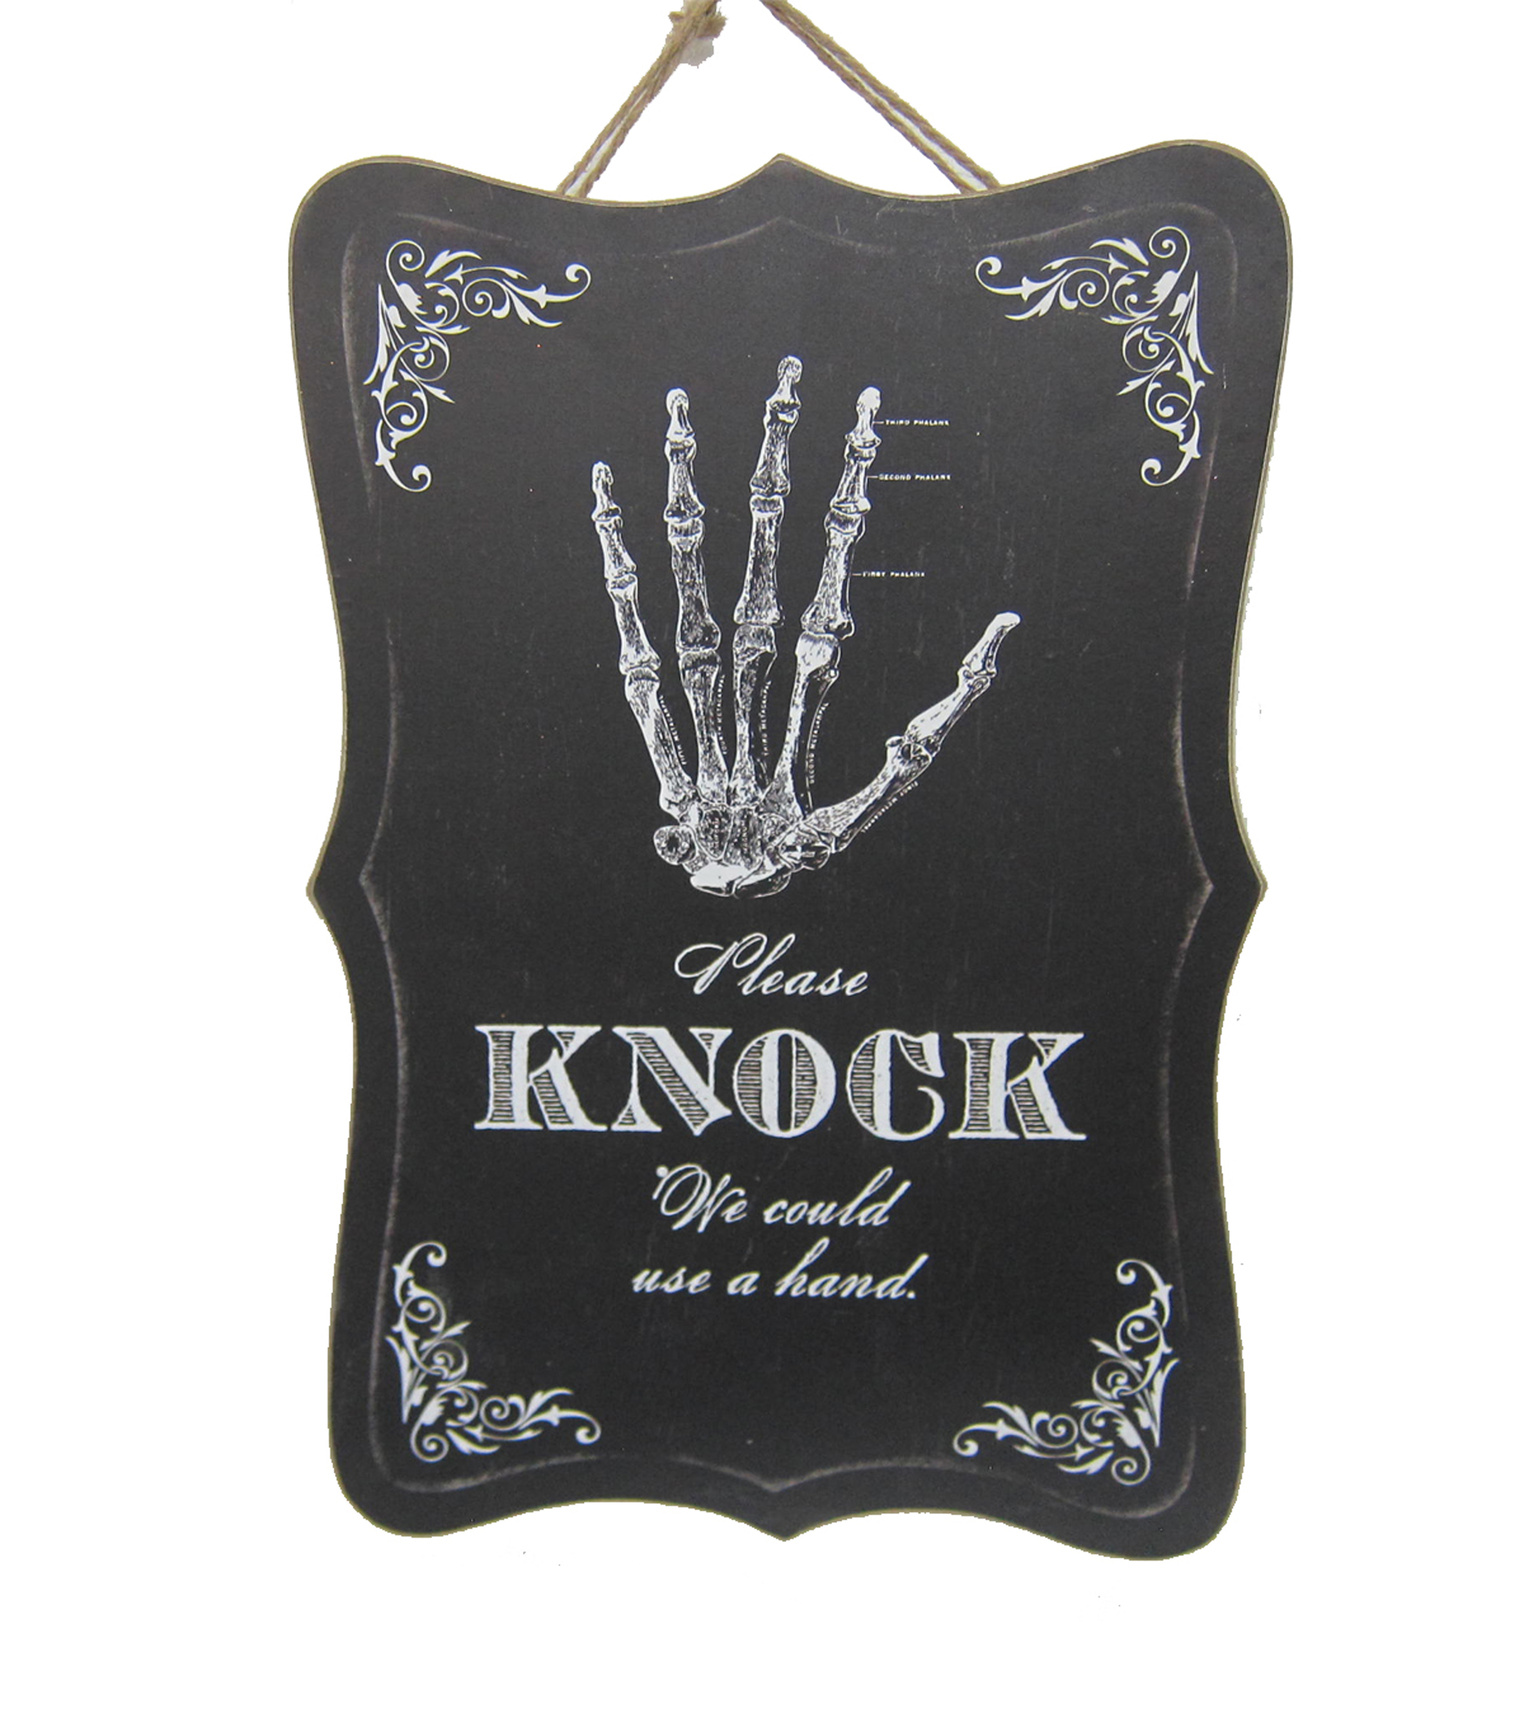 Maker\u0027s Halloween Spooky Wall Decor-Please Knock We Could Use a Hand